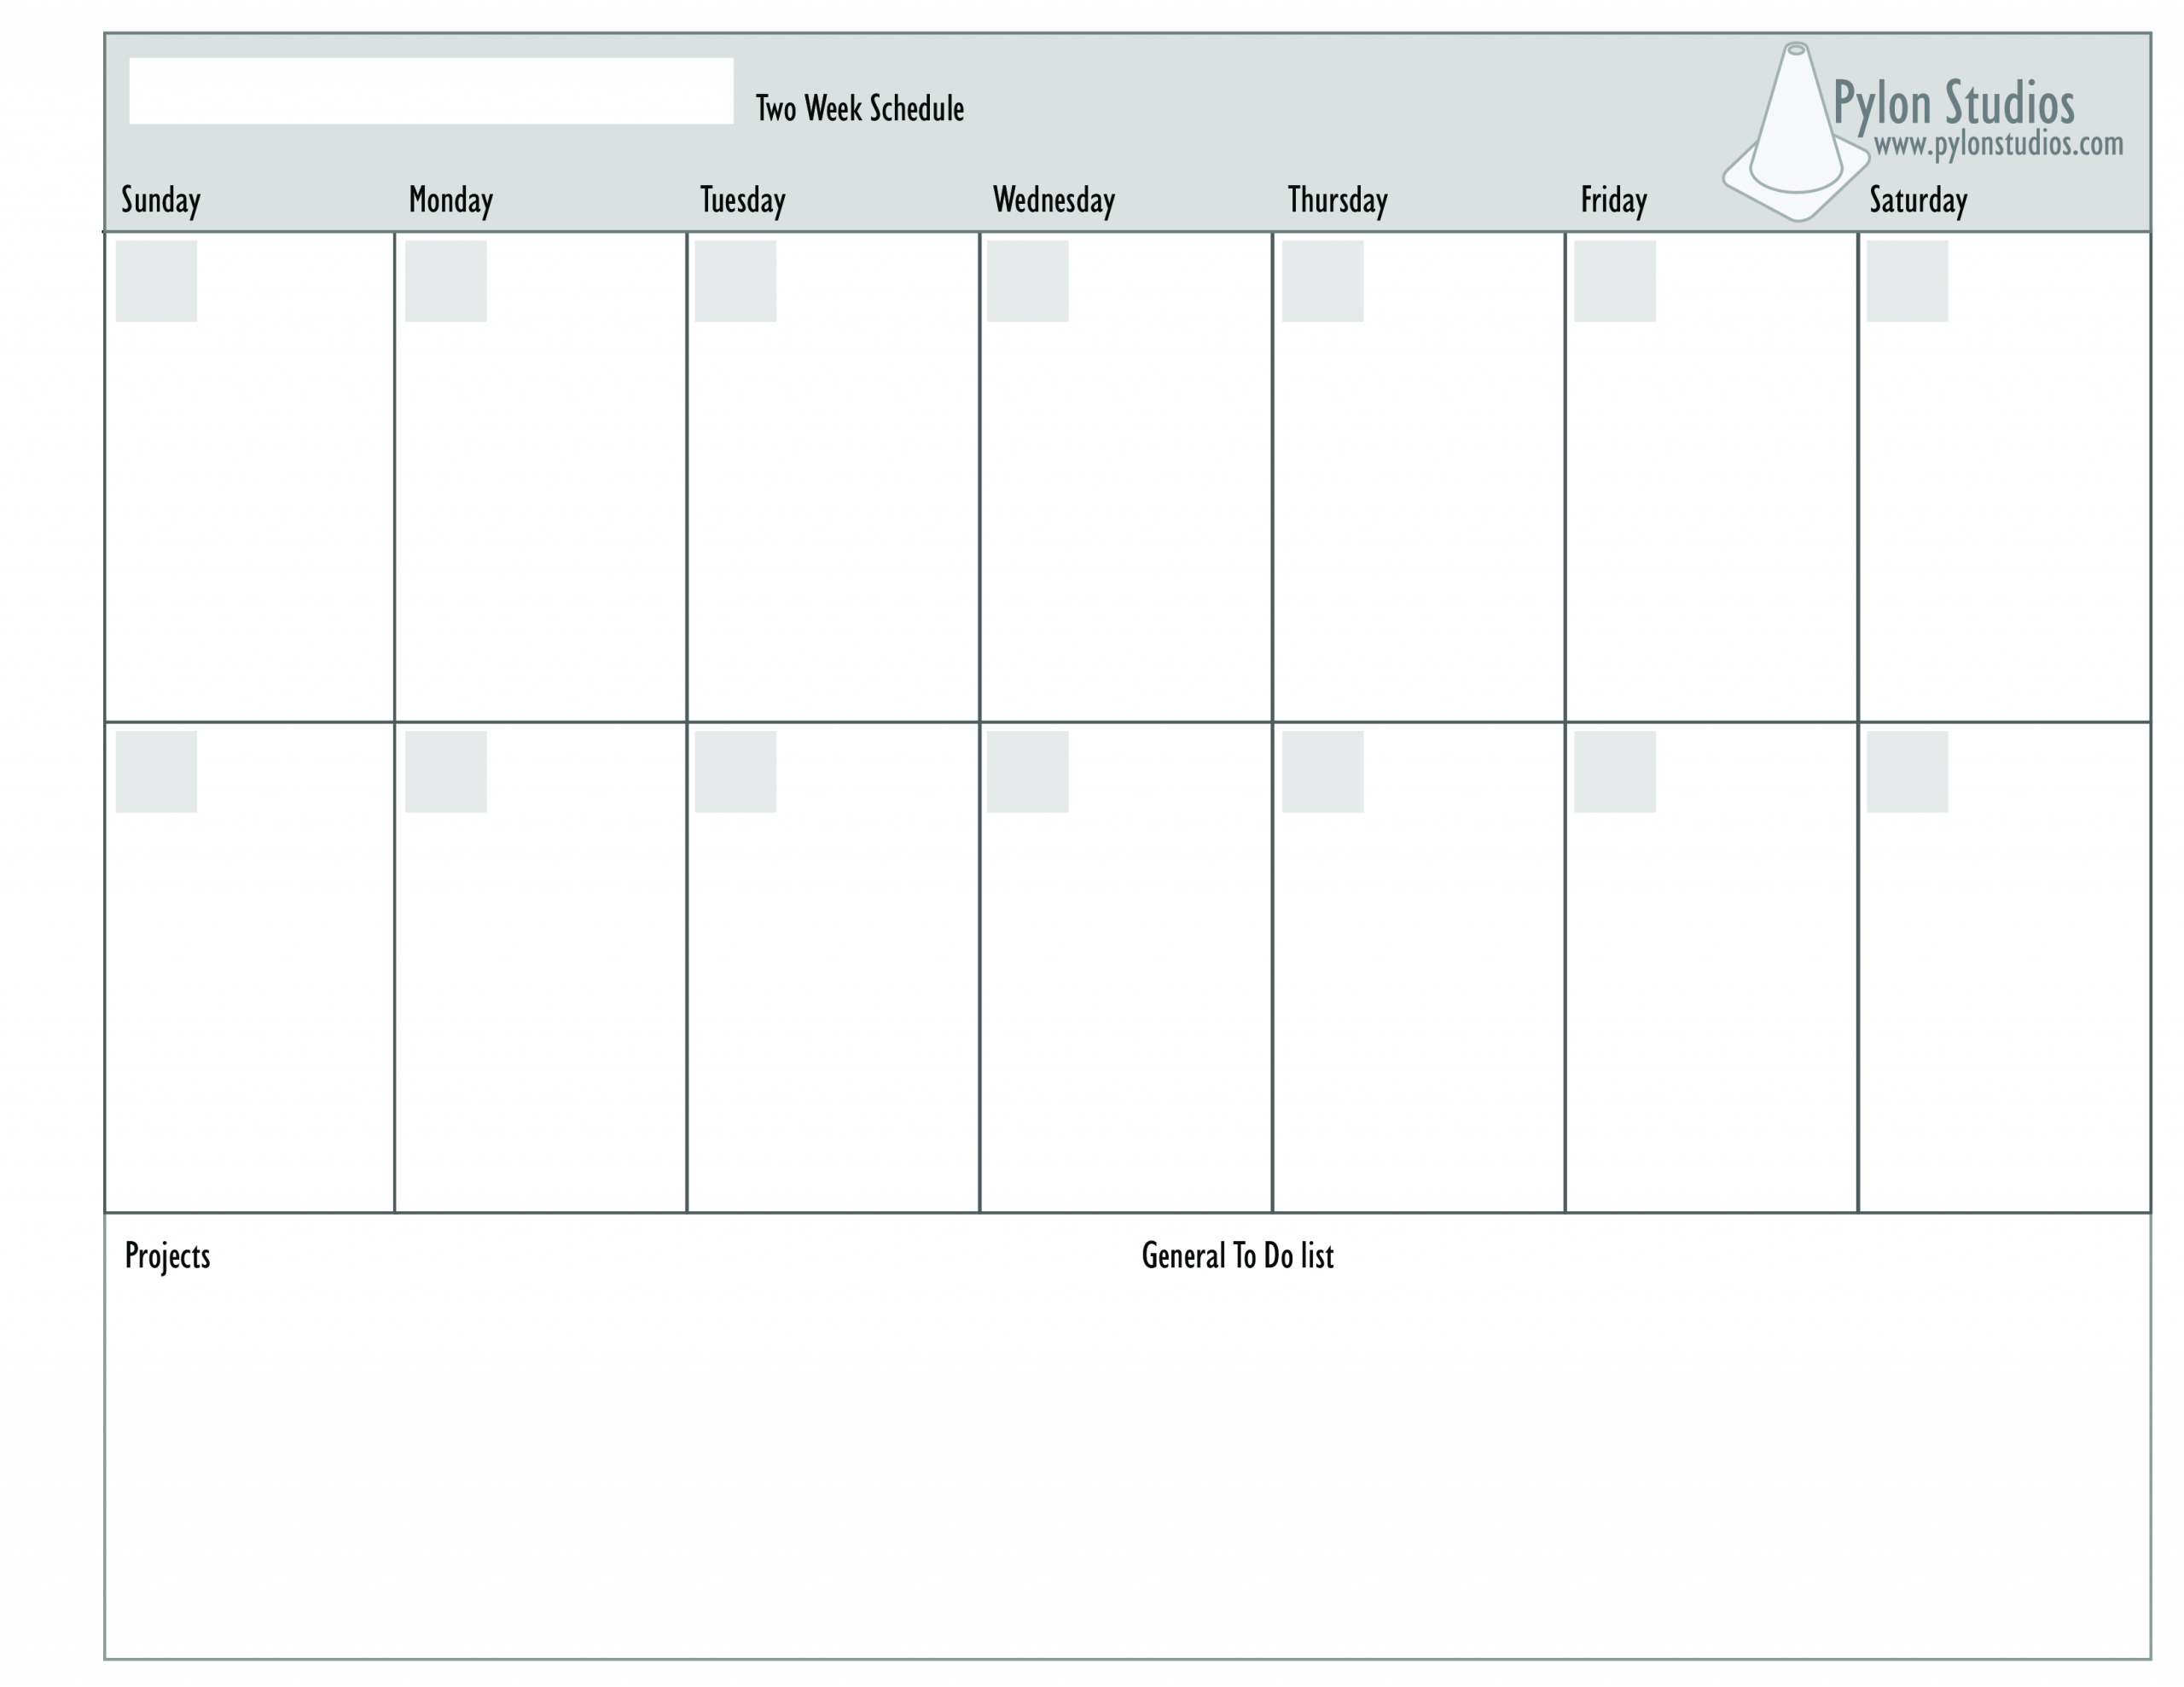 Blank Calender Two Weeks | Example Calendar Printable Blank 2 Week Schedule